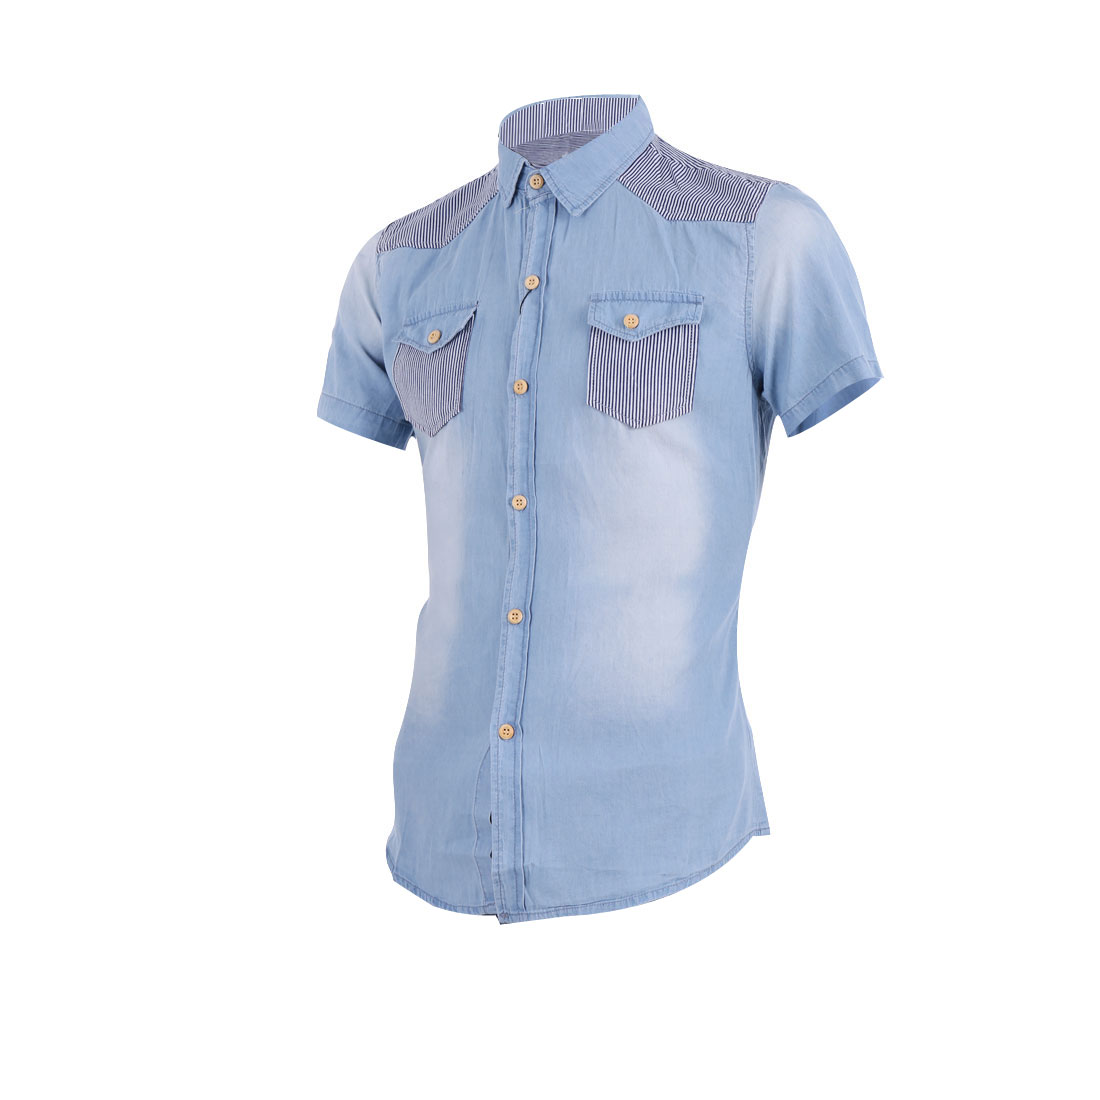 Men Short Sleeve Point Collar Two Chest Pockets Summer Shirt S Sky Blue